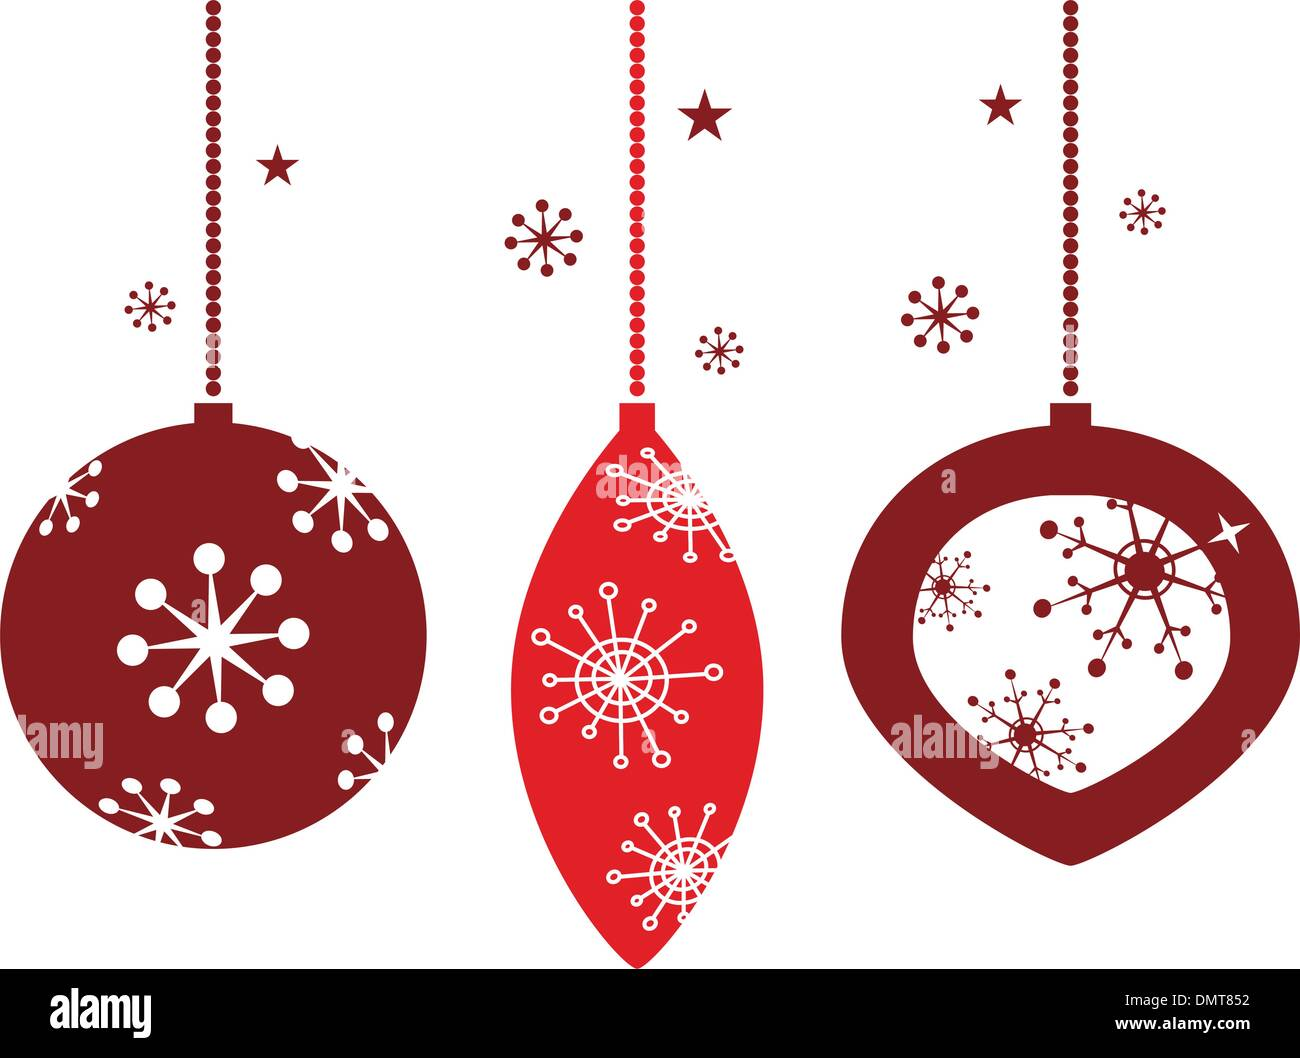 Christmas Decoration For Retro Party Isolated On White Red